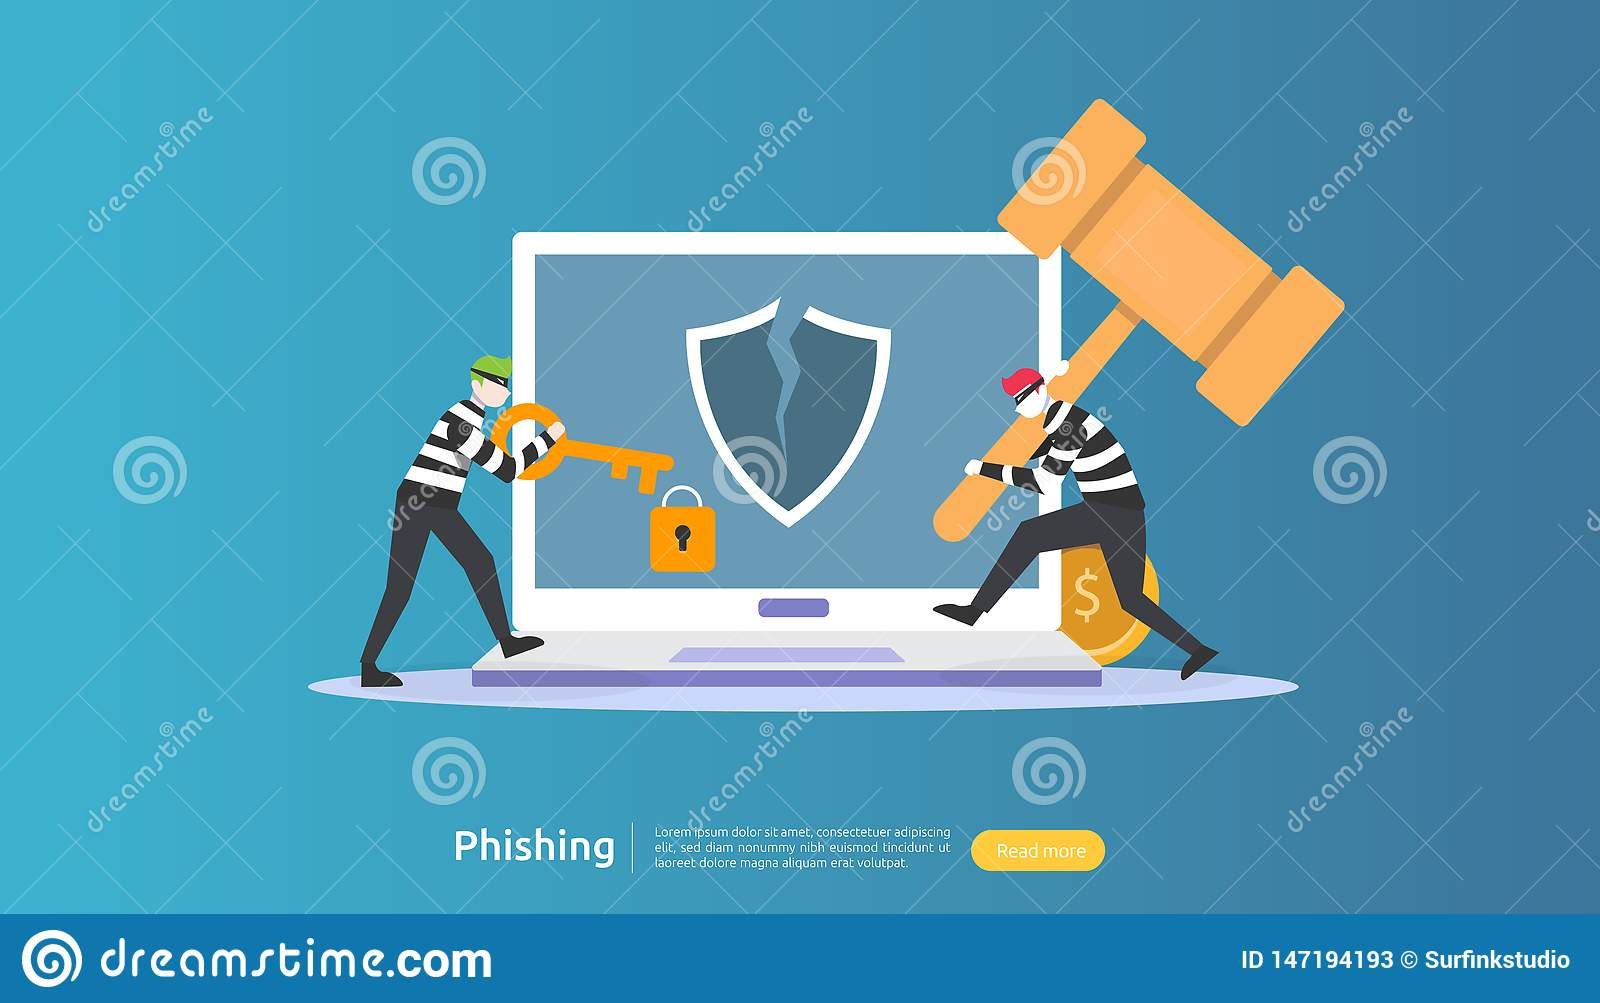 internet security concept with tiny people character. password phishing attack. stealing personal data. web landing page, banner,